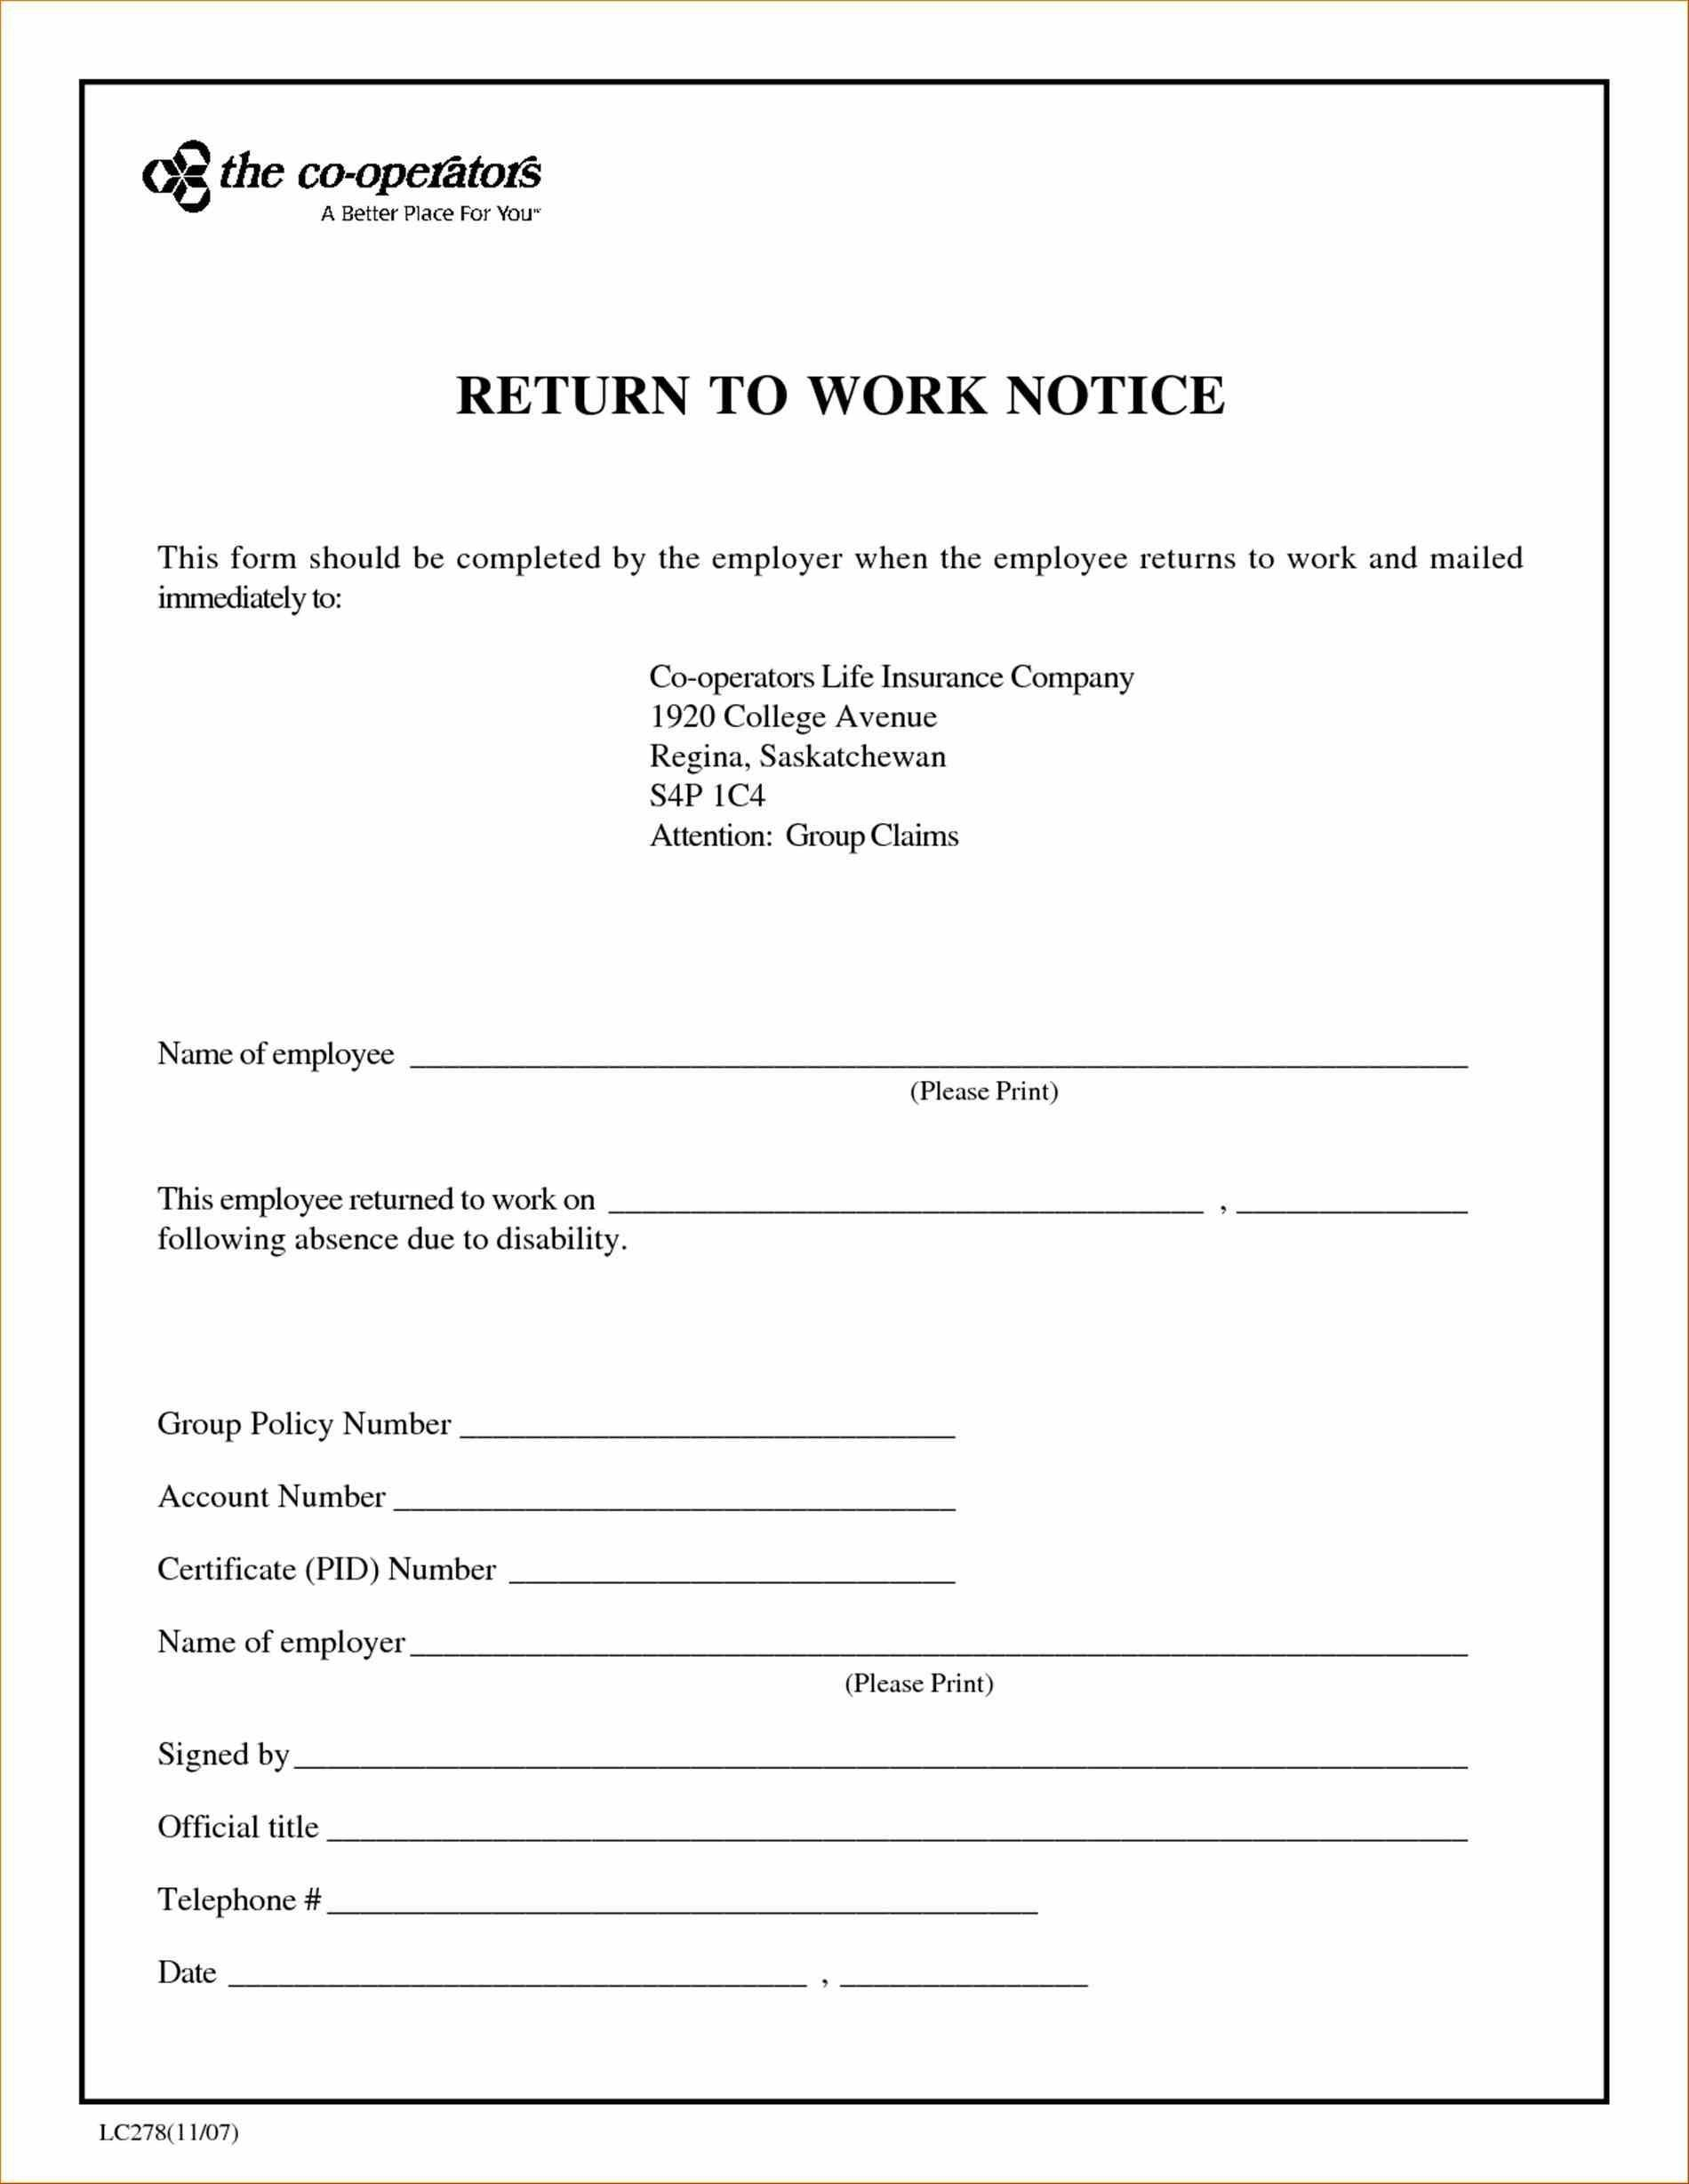 S Doctor Notes Templates Note Templates Onlinestopwatchcom Pin - Doctor Notes For Free Printable